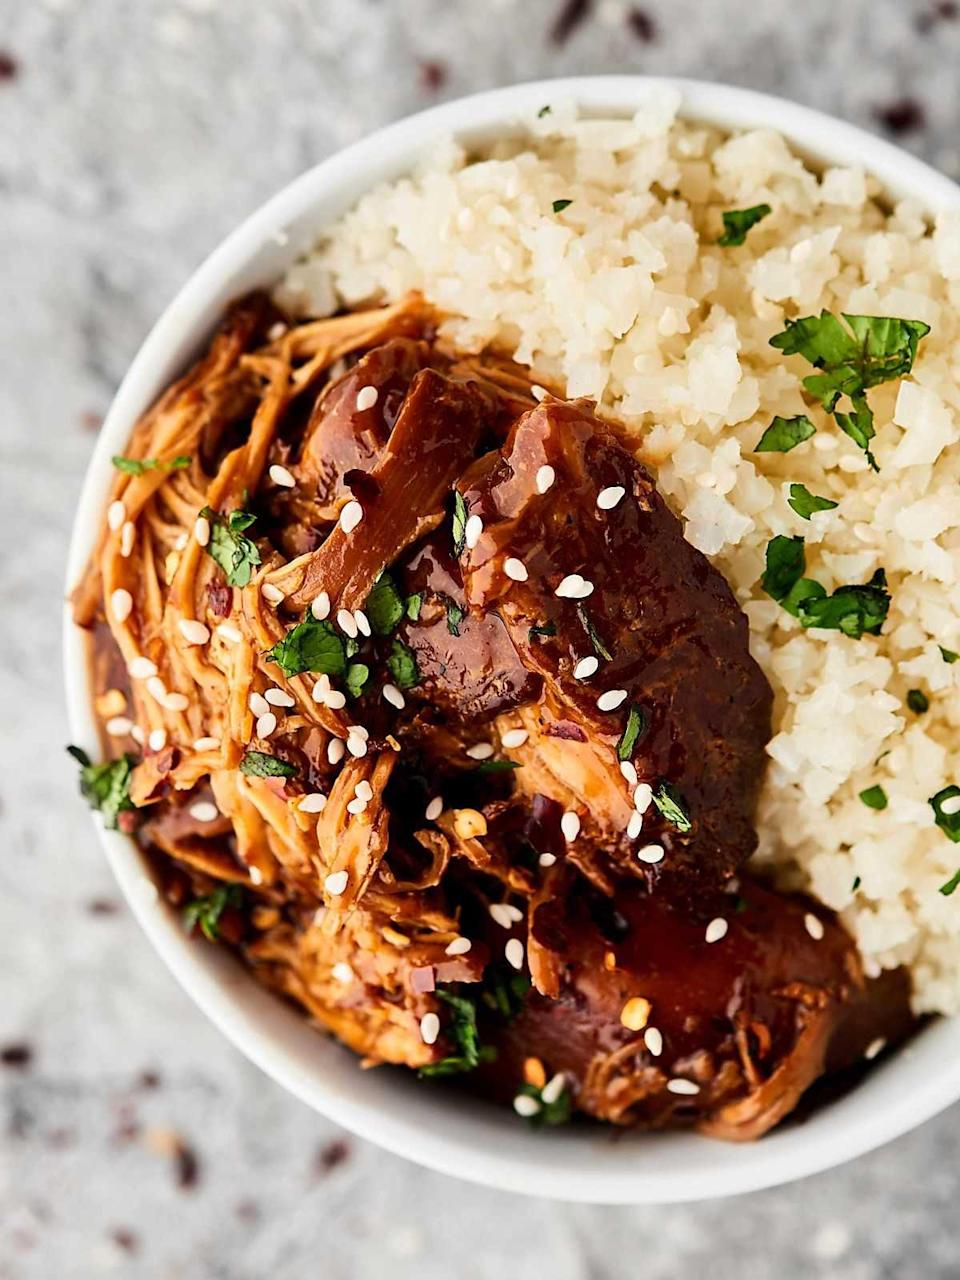 """<p>Make teriyaki chicken in the comfort of your own home when you chef up this delicious dinner. The slow cooker does most of the work, meaning all you have to do is sit back, relax, and enjoy a mouthwatering dinner. Type in the amount of servings you want to make where it says """"yield,"""" so you don't end up with too many leftovers!</p> <p><strong>Get the recipe:</strong> <a href=""""https://showmetheyummy.com/slow-cooker-teriyaki-chicken-recipe/"""" class=""""link rapid-noclick-resp"""" rel=""""nofollow noopener"""" target=""""_blank"""" data-ylk=""""slk:crockpot teriyaki chicken"""">crockpot teriyaki chicken</a></p>"""